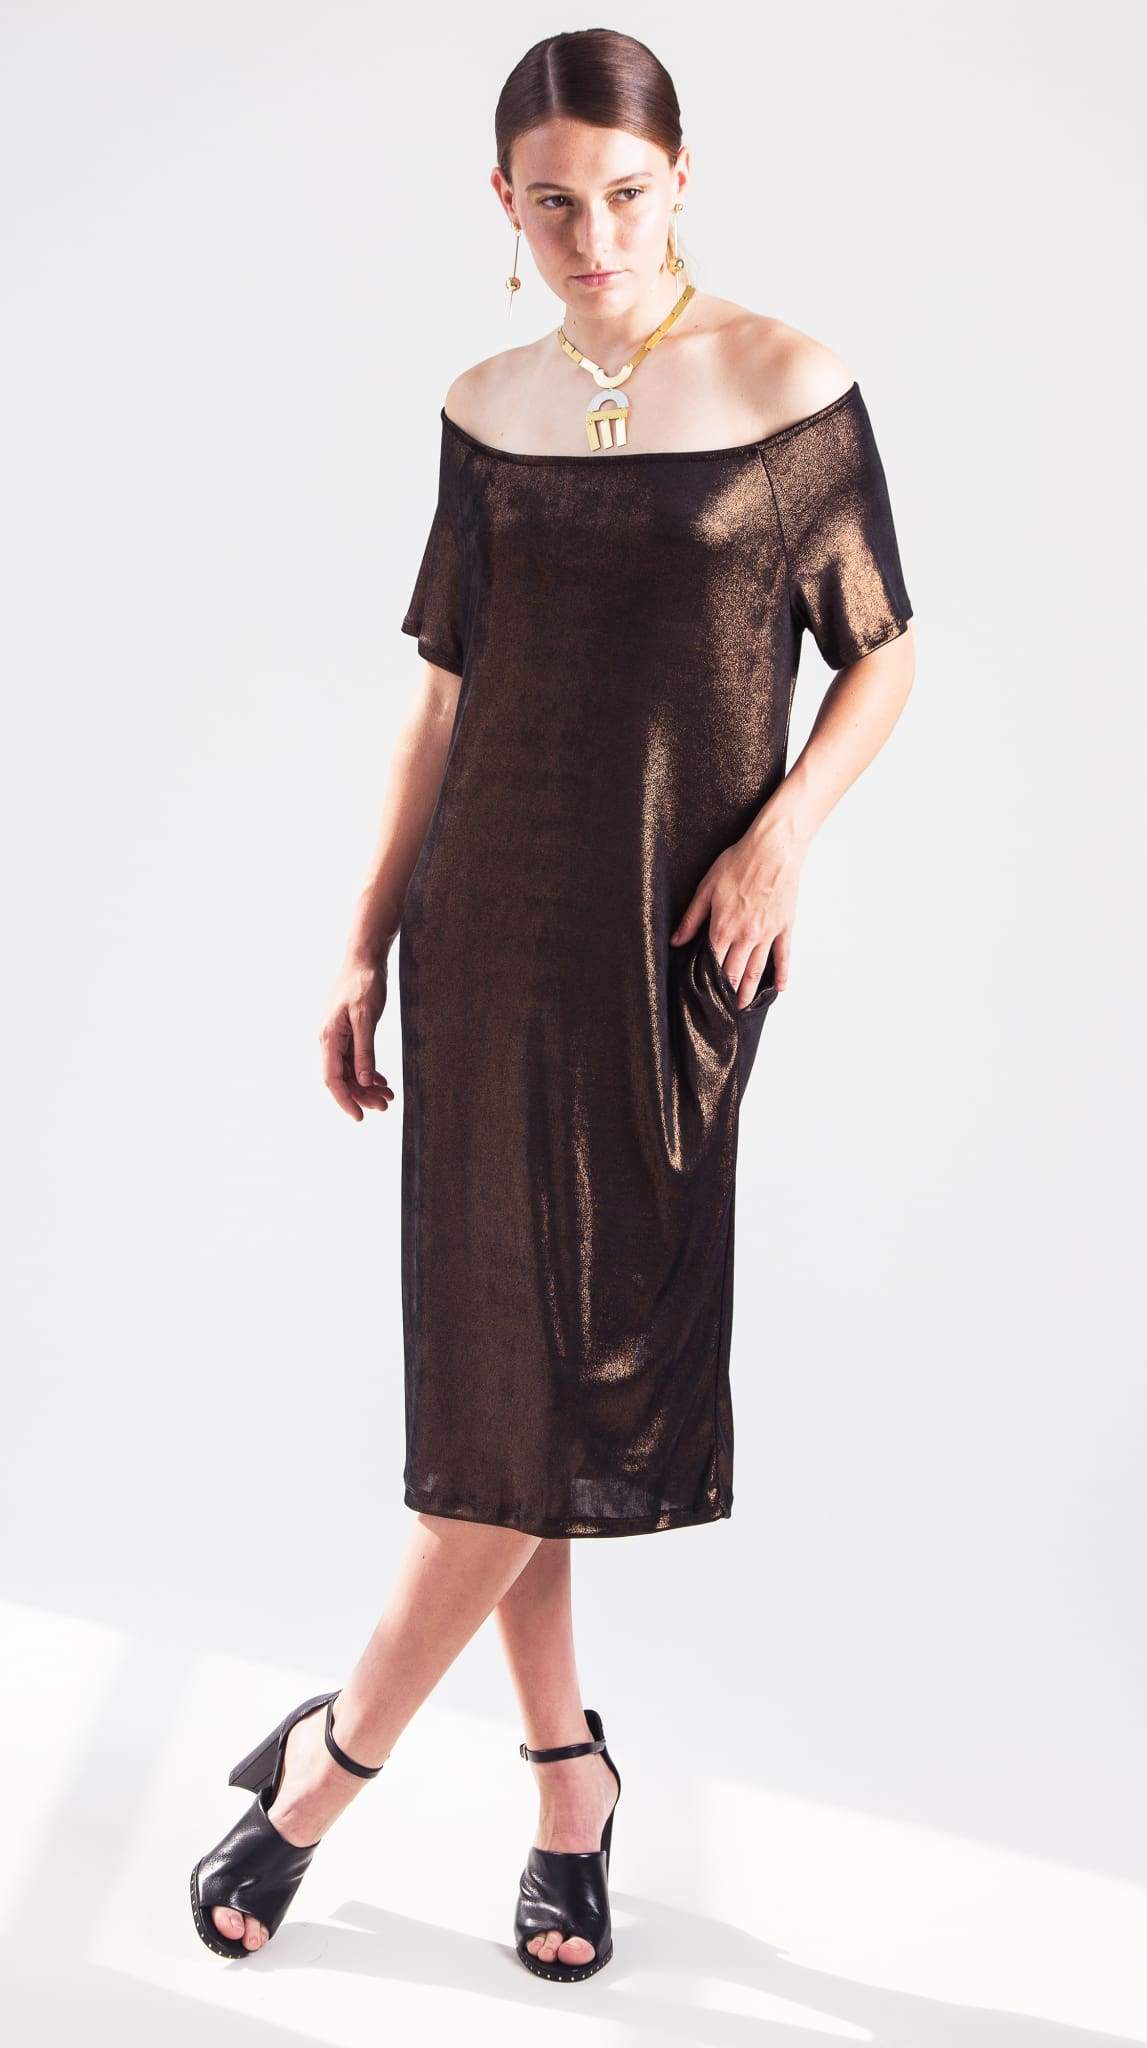 Bronze Rhea Raglan Sleeve Dress front by VARYFORM for Nineteenth Amendment